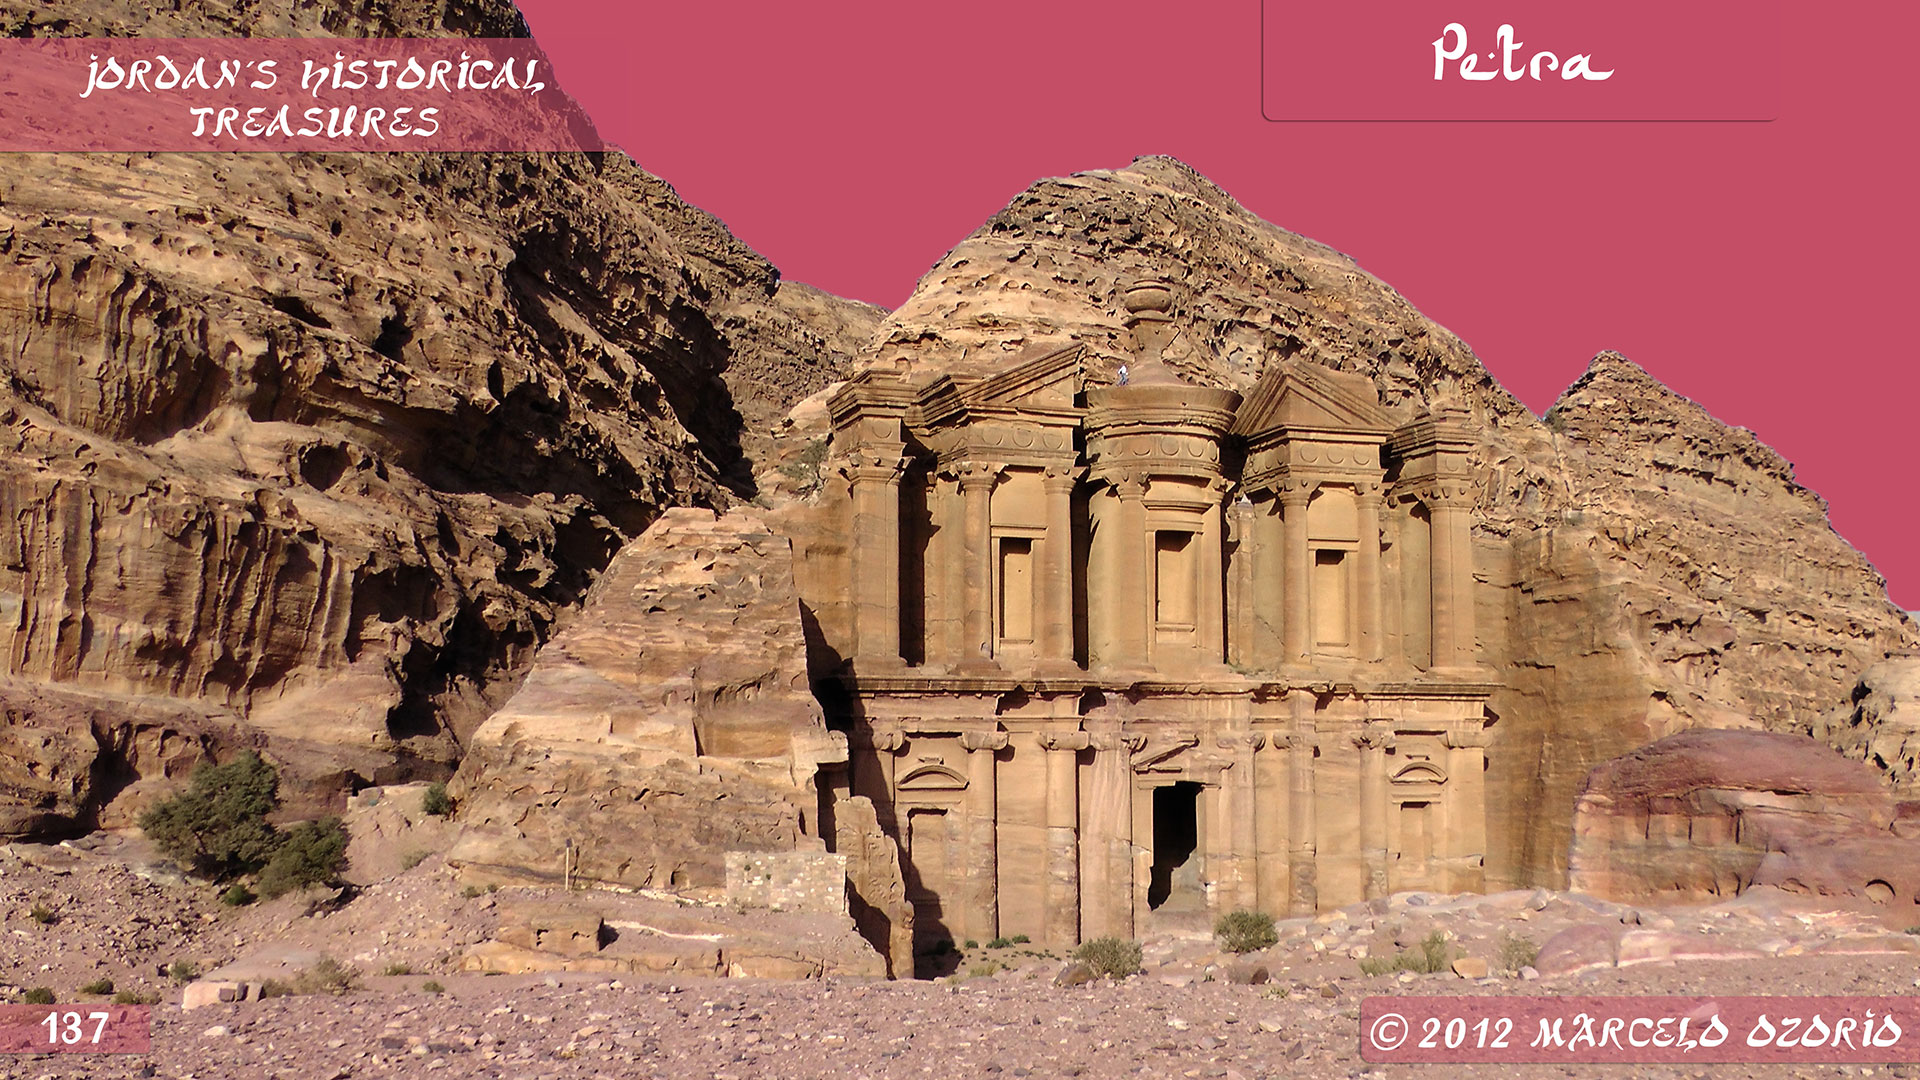 Petra Archaeological City Jordan 57 - The Astonishing Treasure at Petra - Jordan